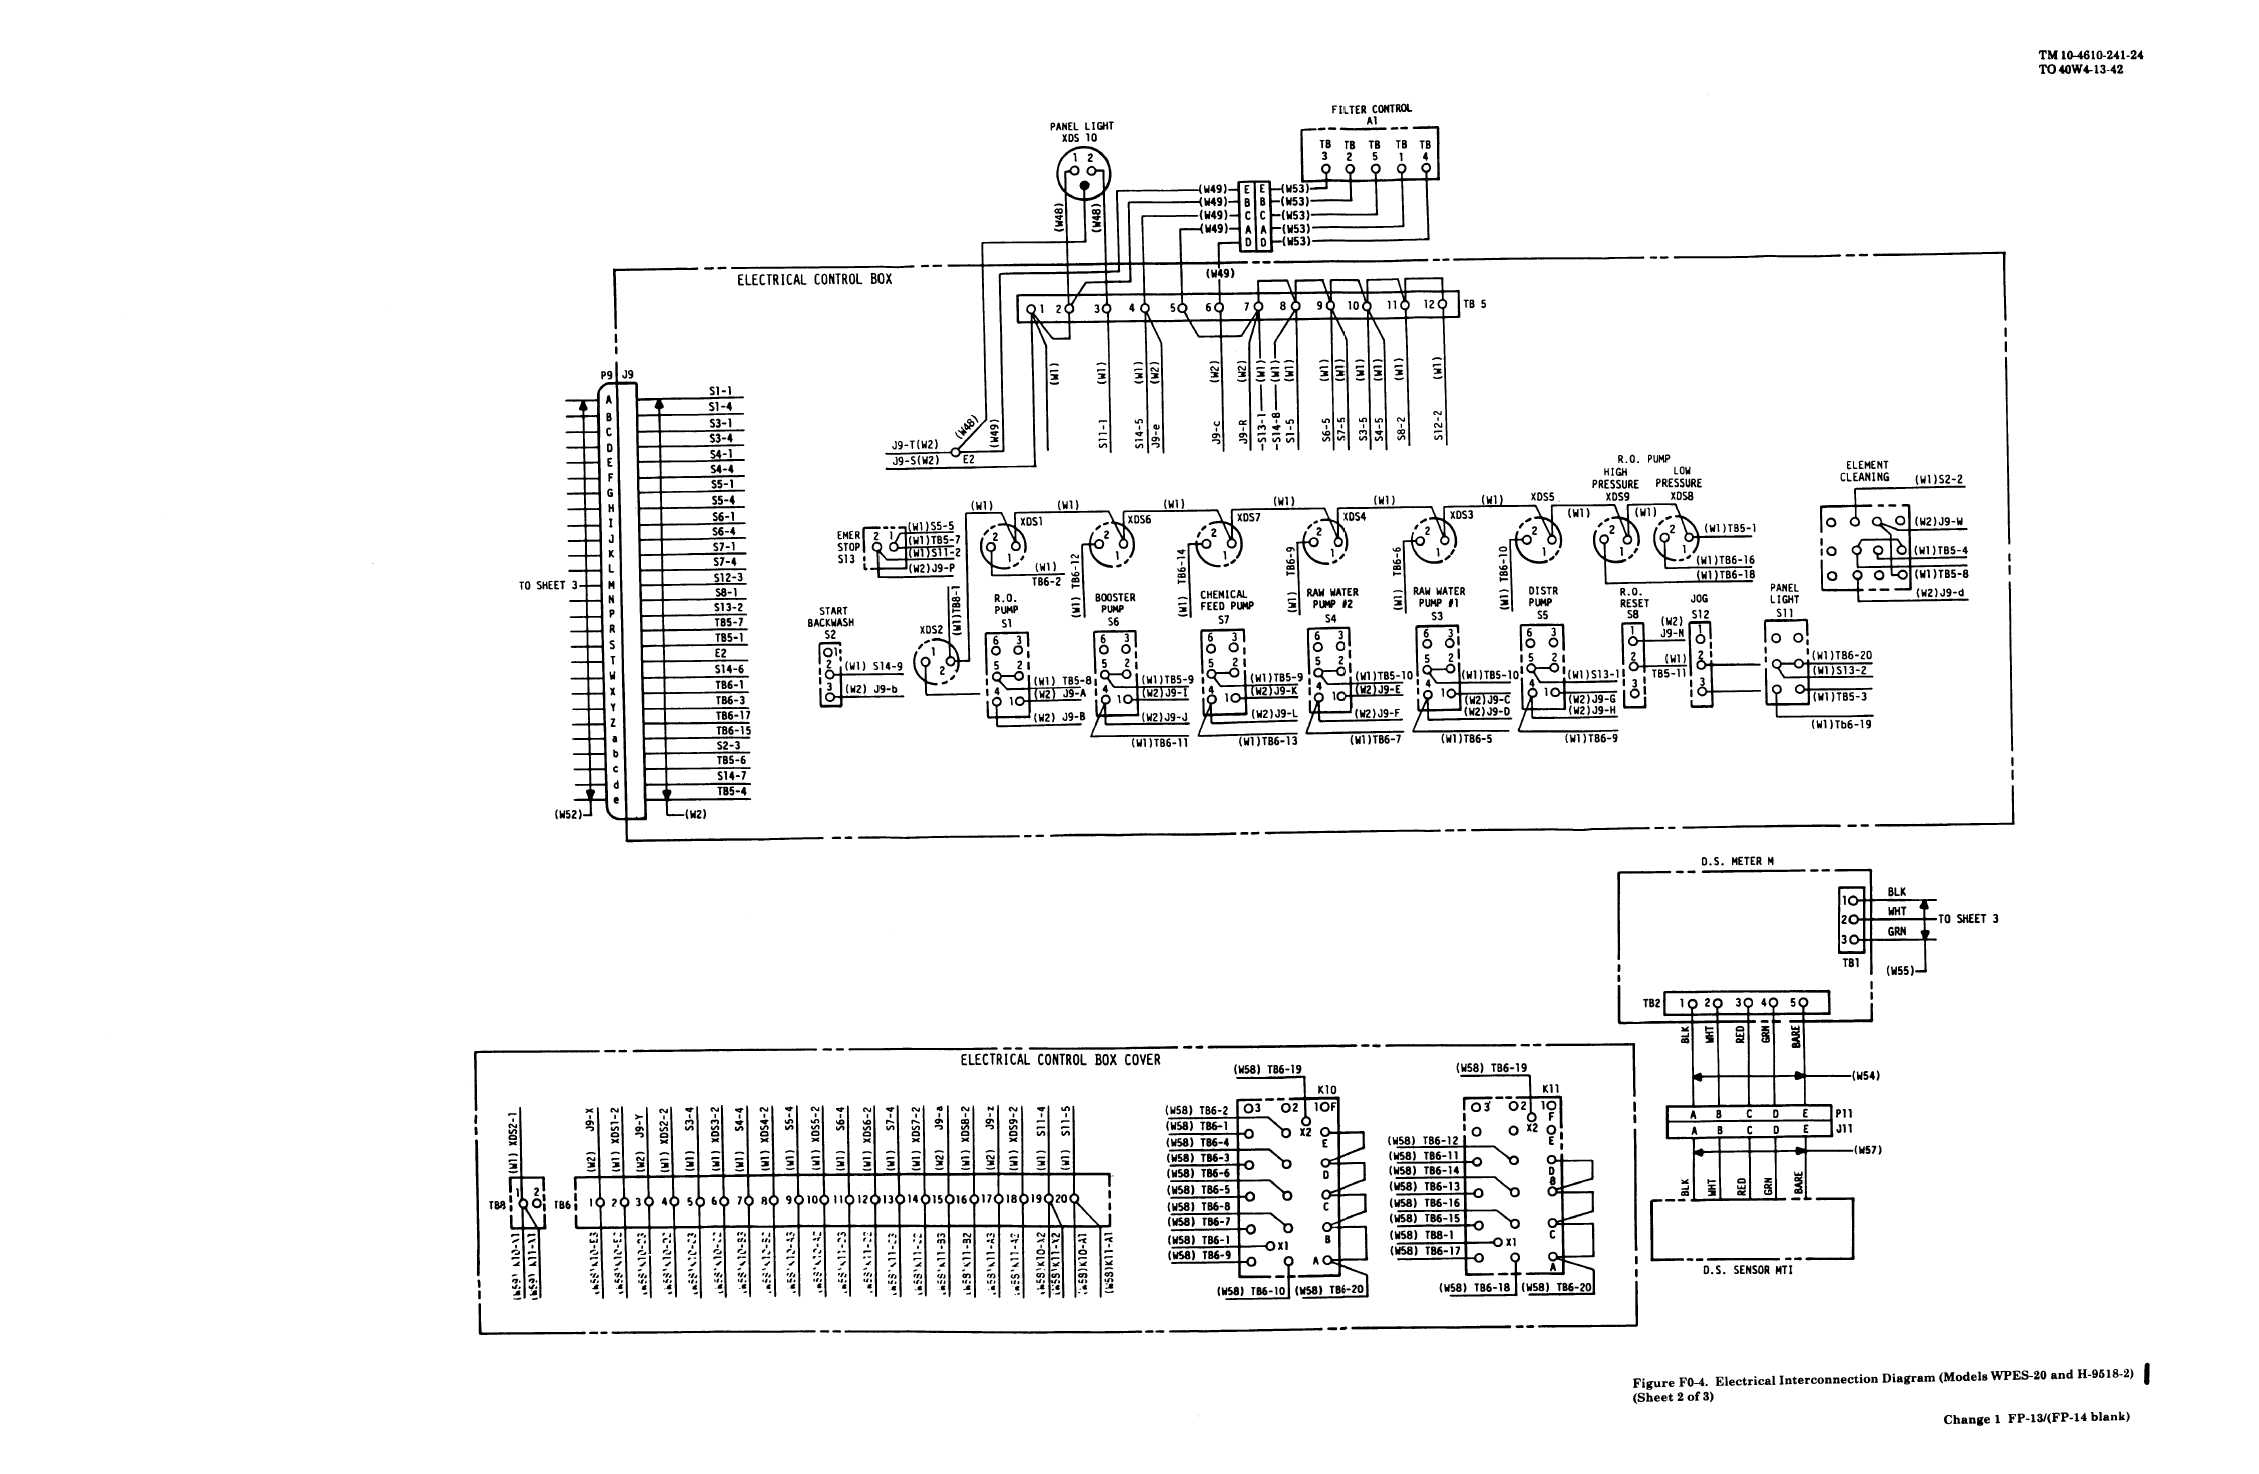 figure fo    electrical interconnection diagram  sheet  of  electrical interconnection diagram  sheet  of